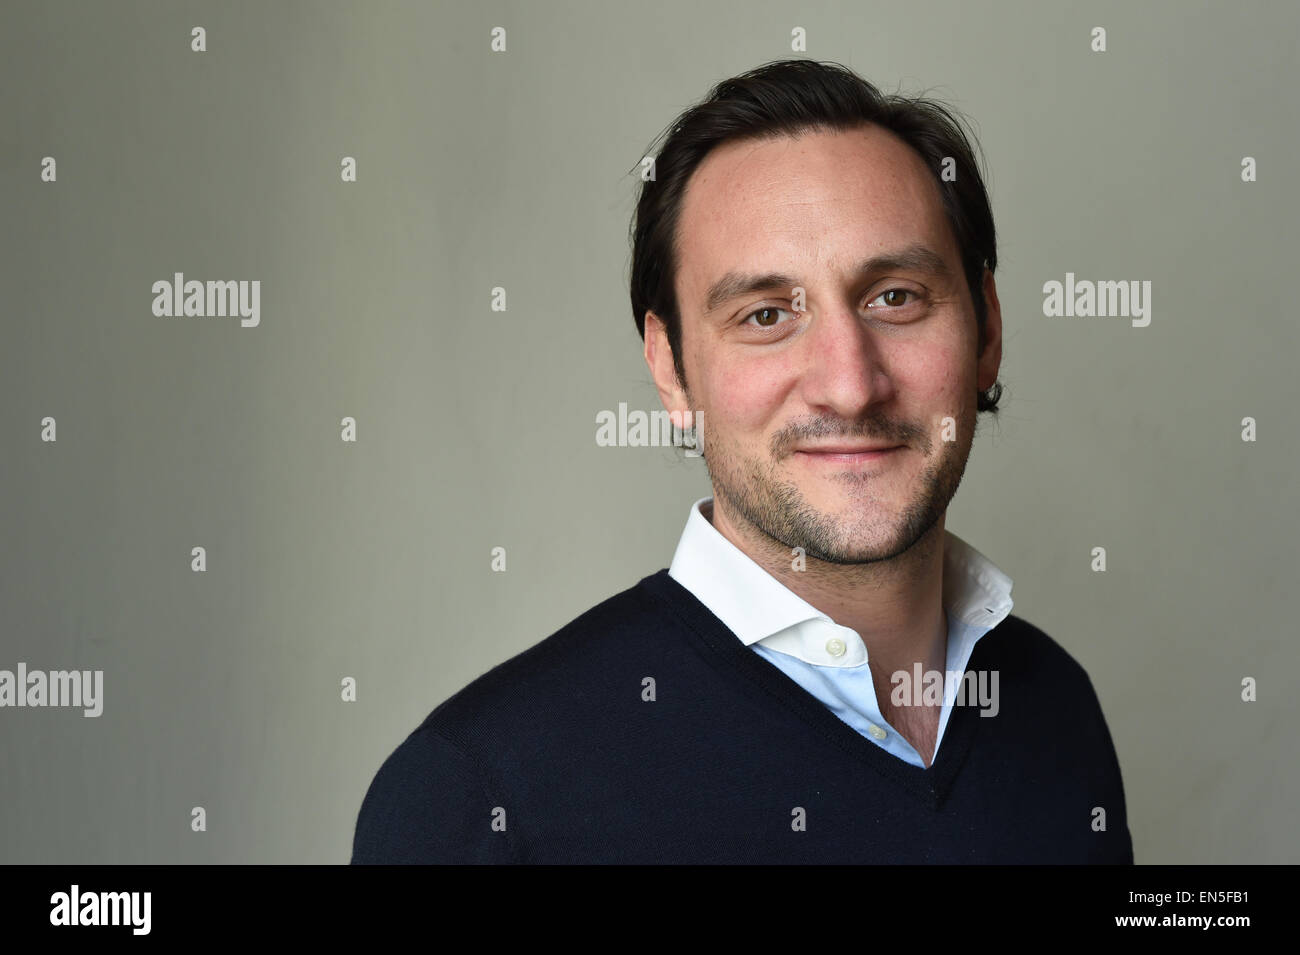 Berlin, Germany. 17th Apr, 2015. Founder and CEO of Food Express Benjamin Pochhammer poses in Berlin, Germany, 17 - Stock Image